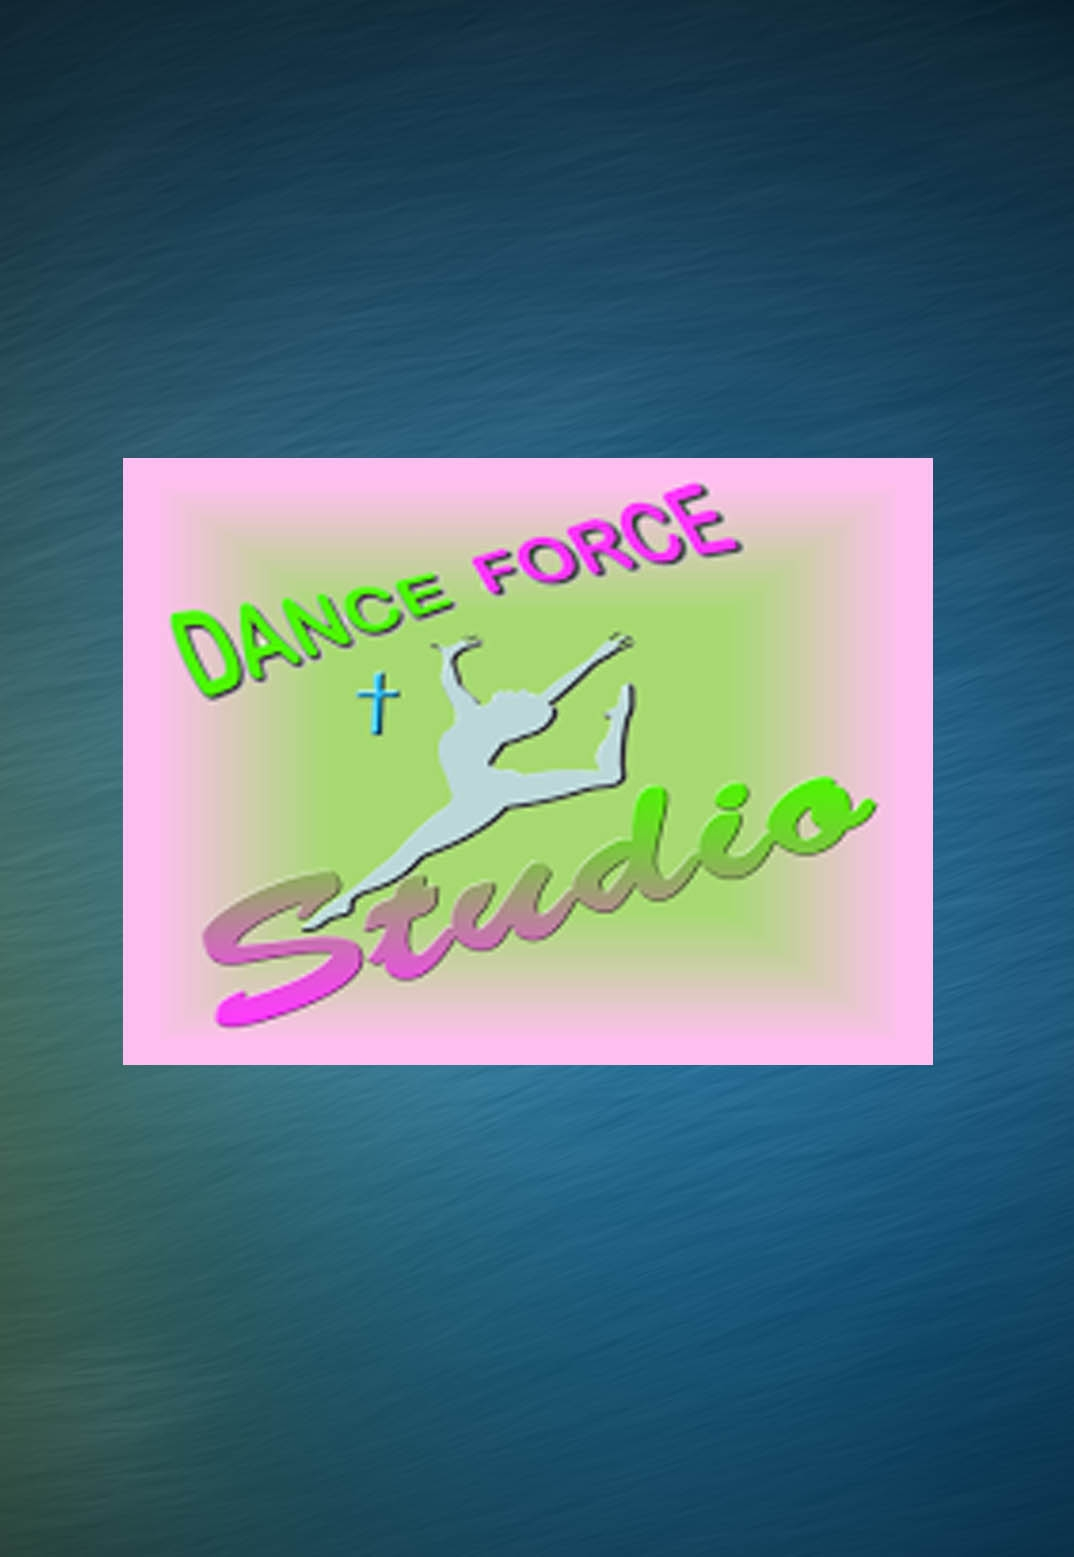 DANCE FORCE STUDIO SATURDAY, MAY 21, 2016 PURCHASE BOTH SHOWS 9:30 AM AND 2:00 PM